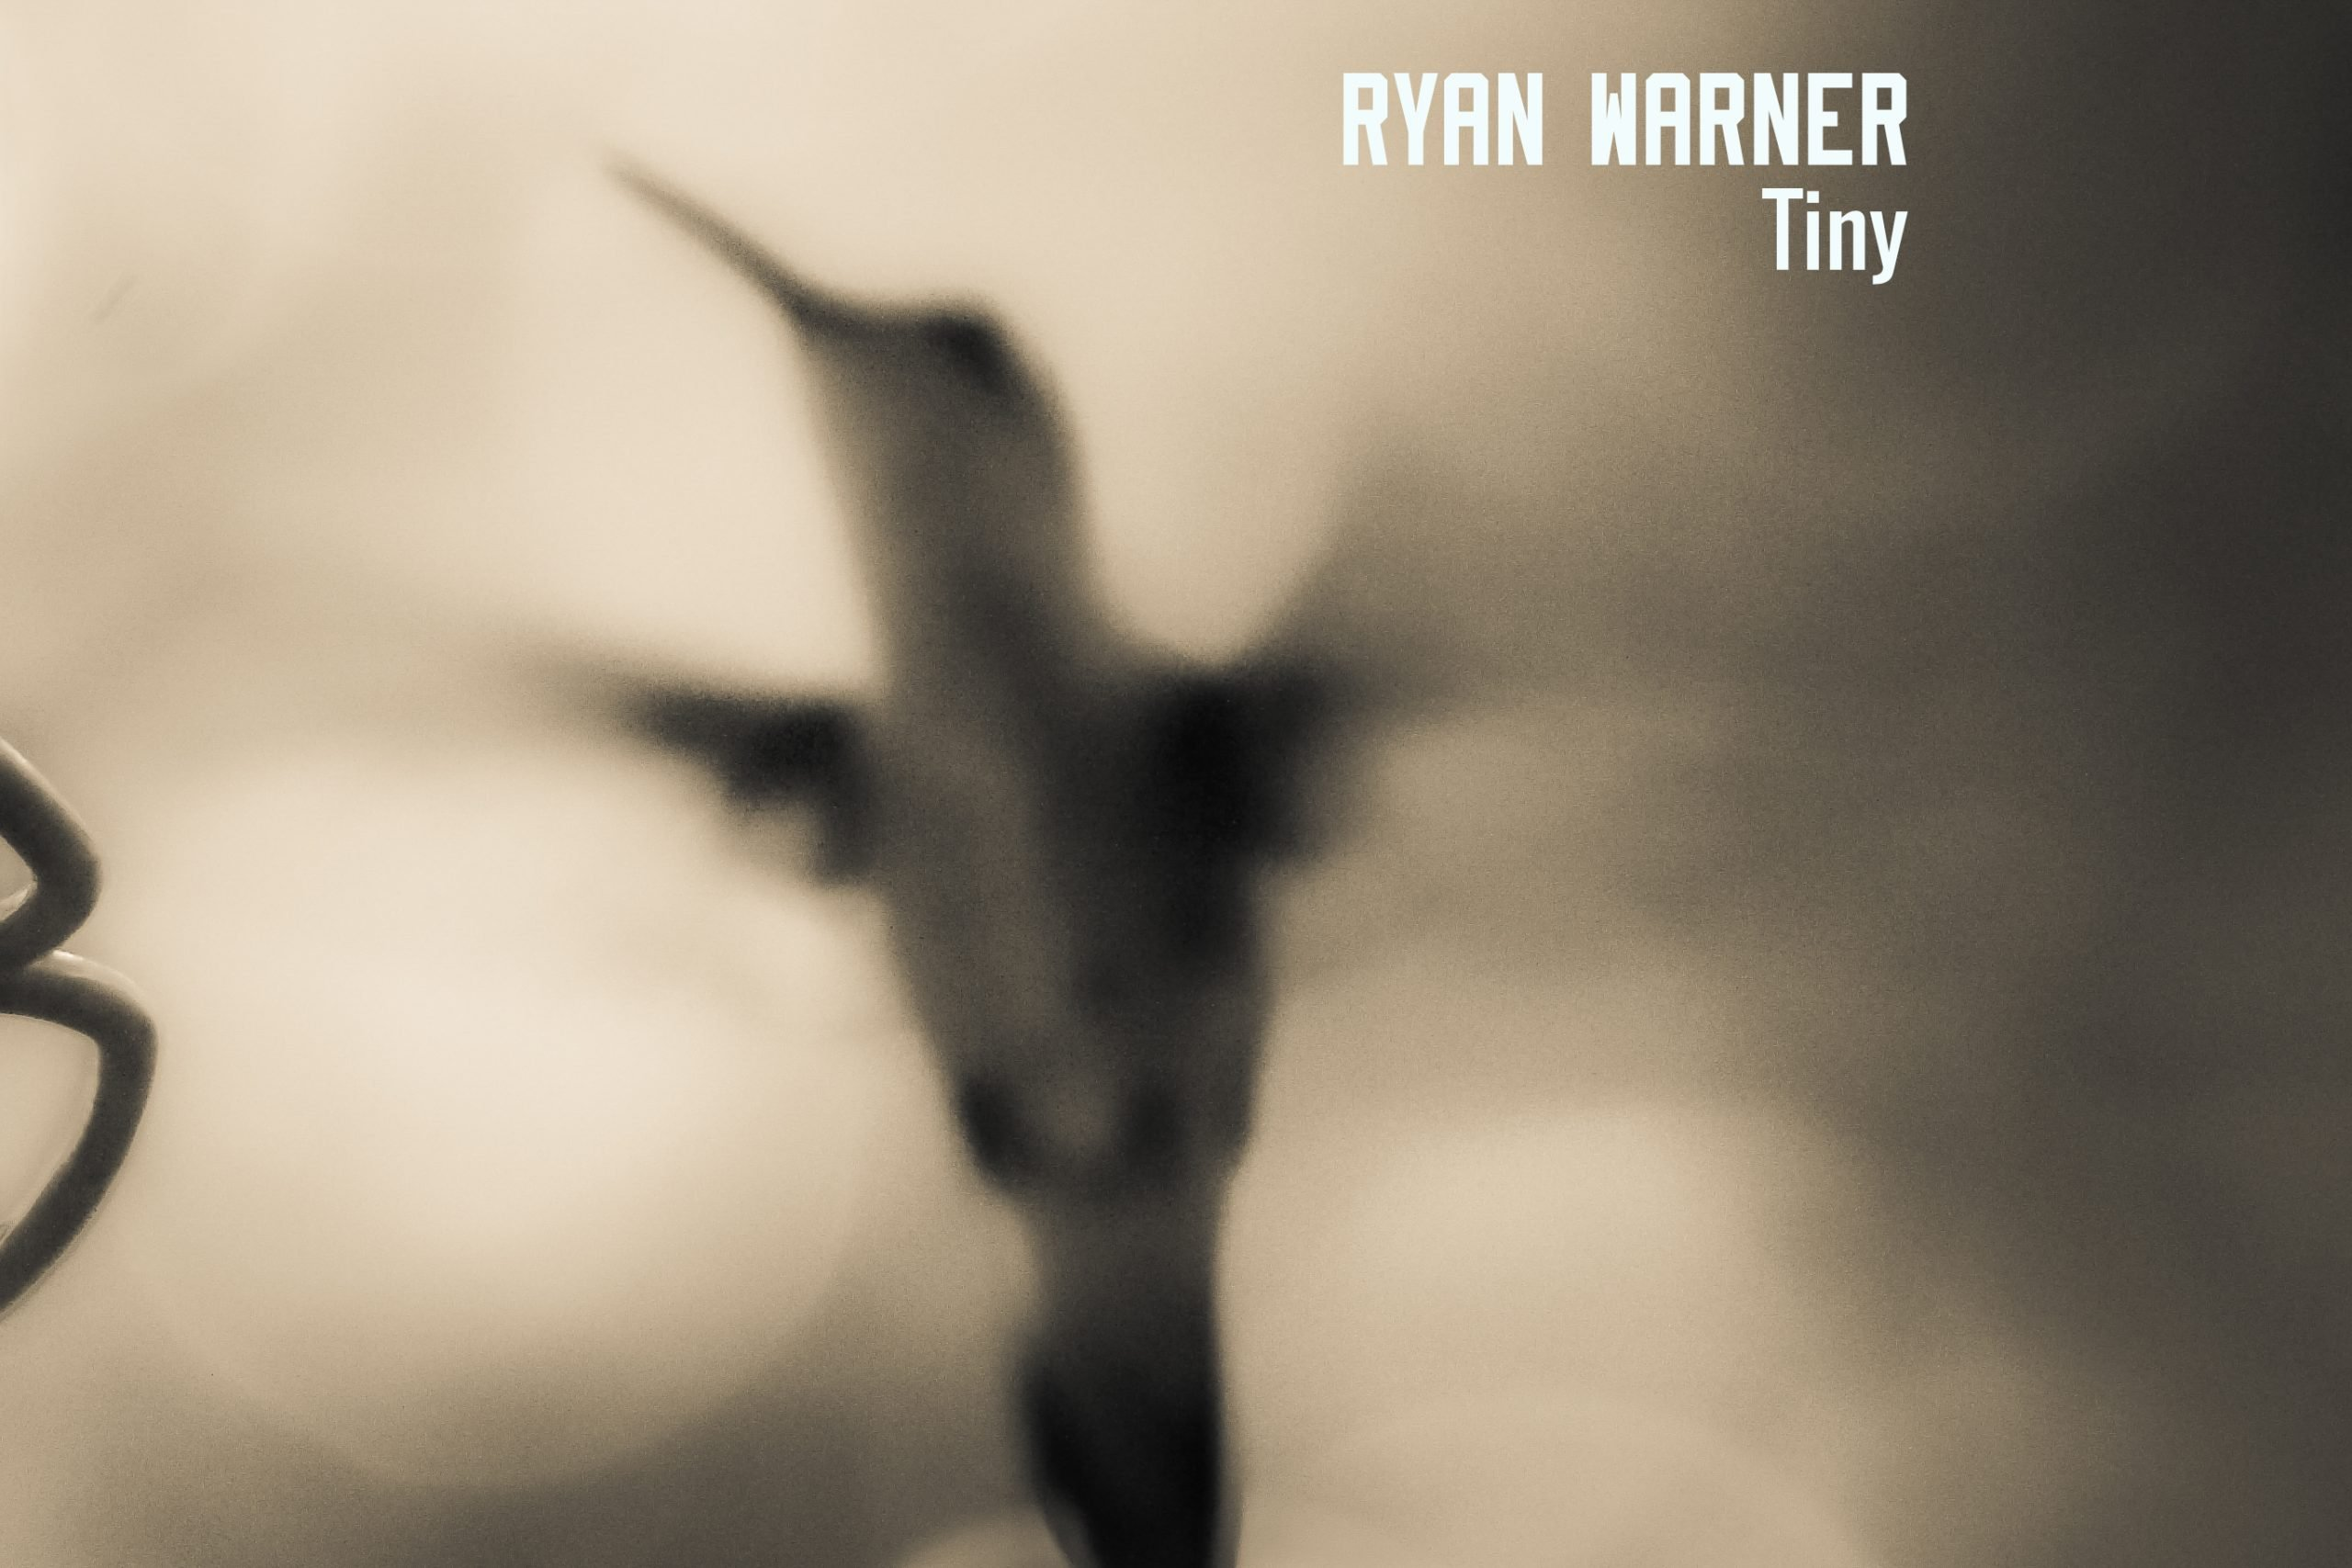 Tiny – New EP by Ryan Warner